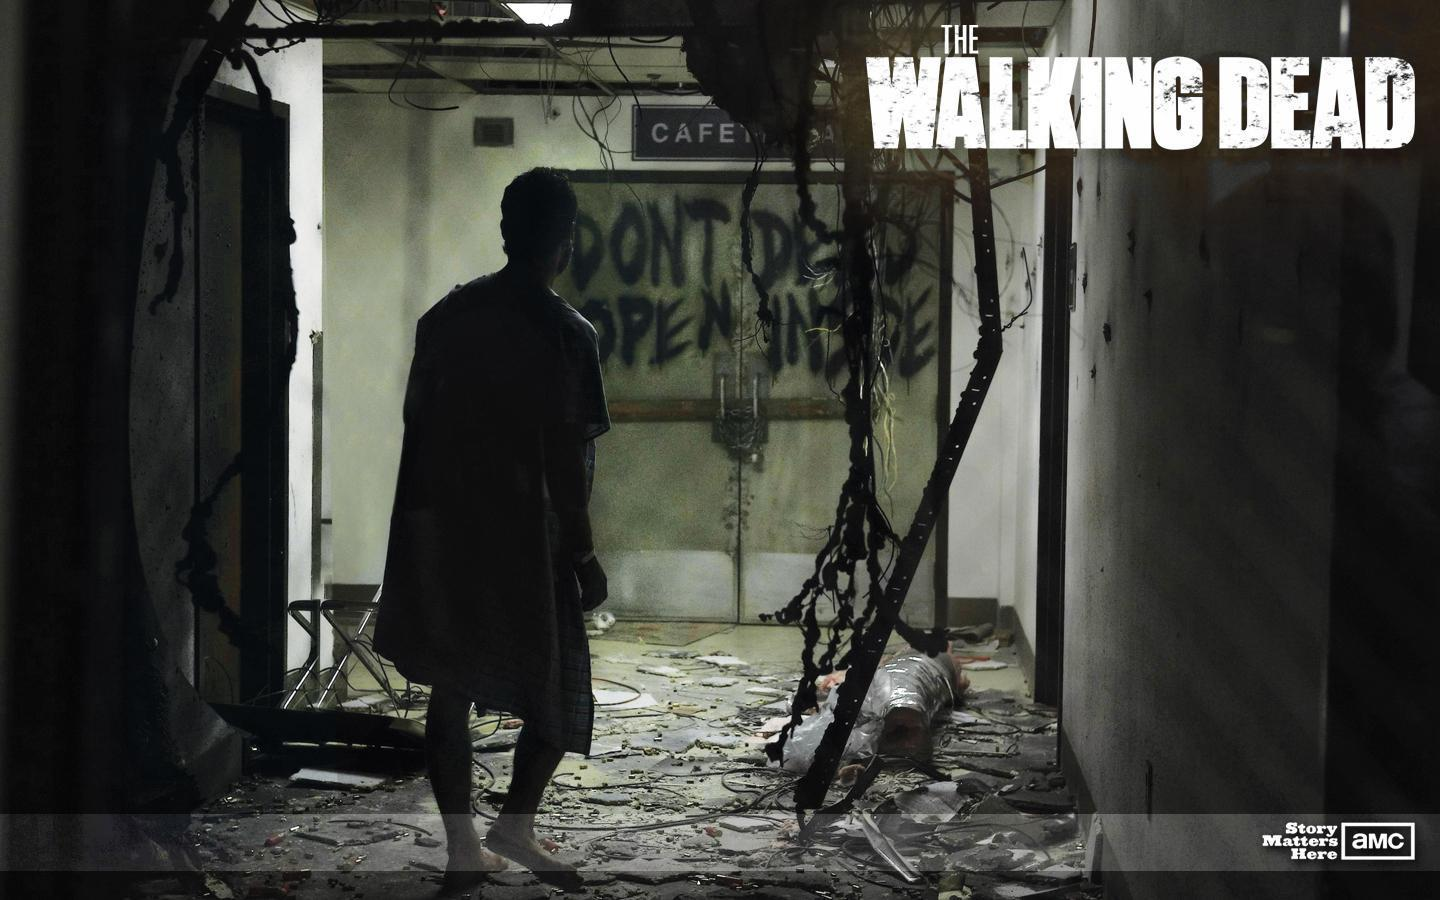 The Walking Dead Wallpaper - The Walking Dead Wallpaper (17116137 ...